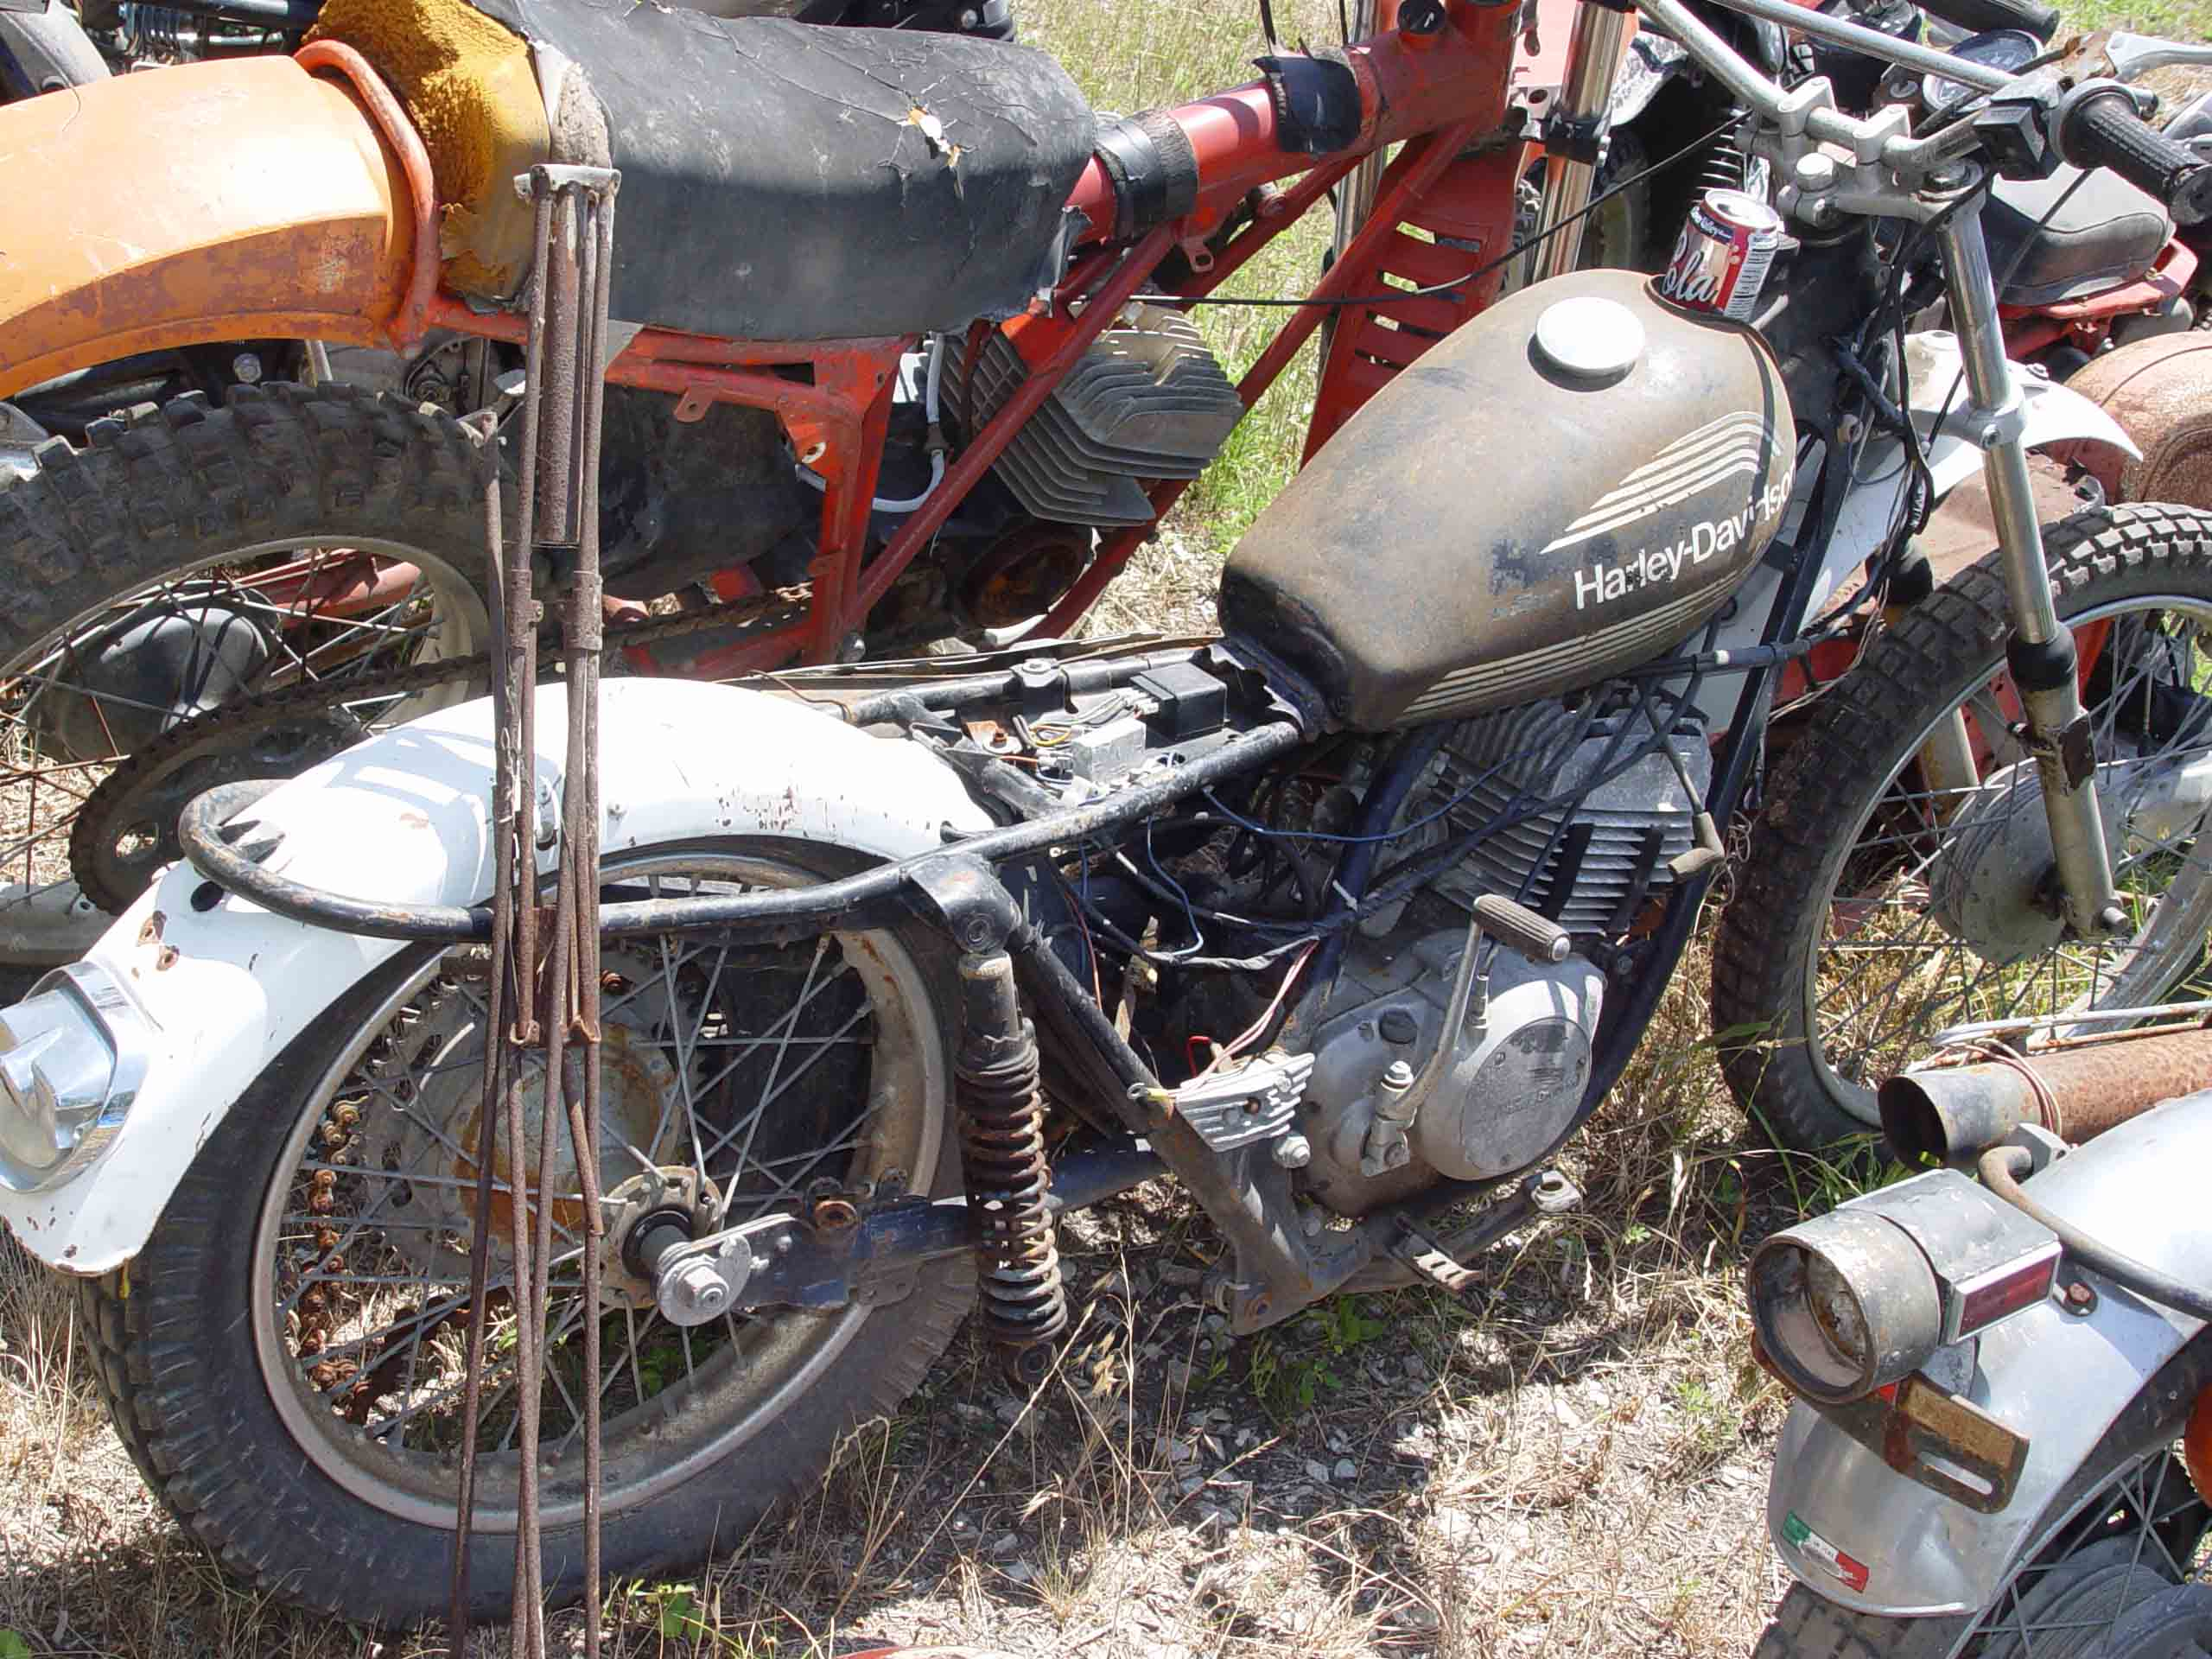 Motorcycle junk yard pictures to pin on pinterest pinsdaddy for Motor cycle junk yard